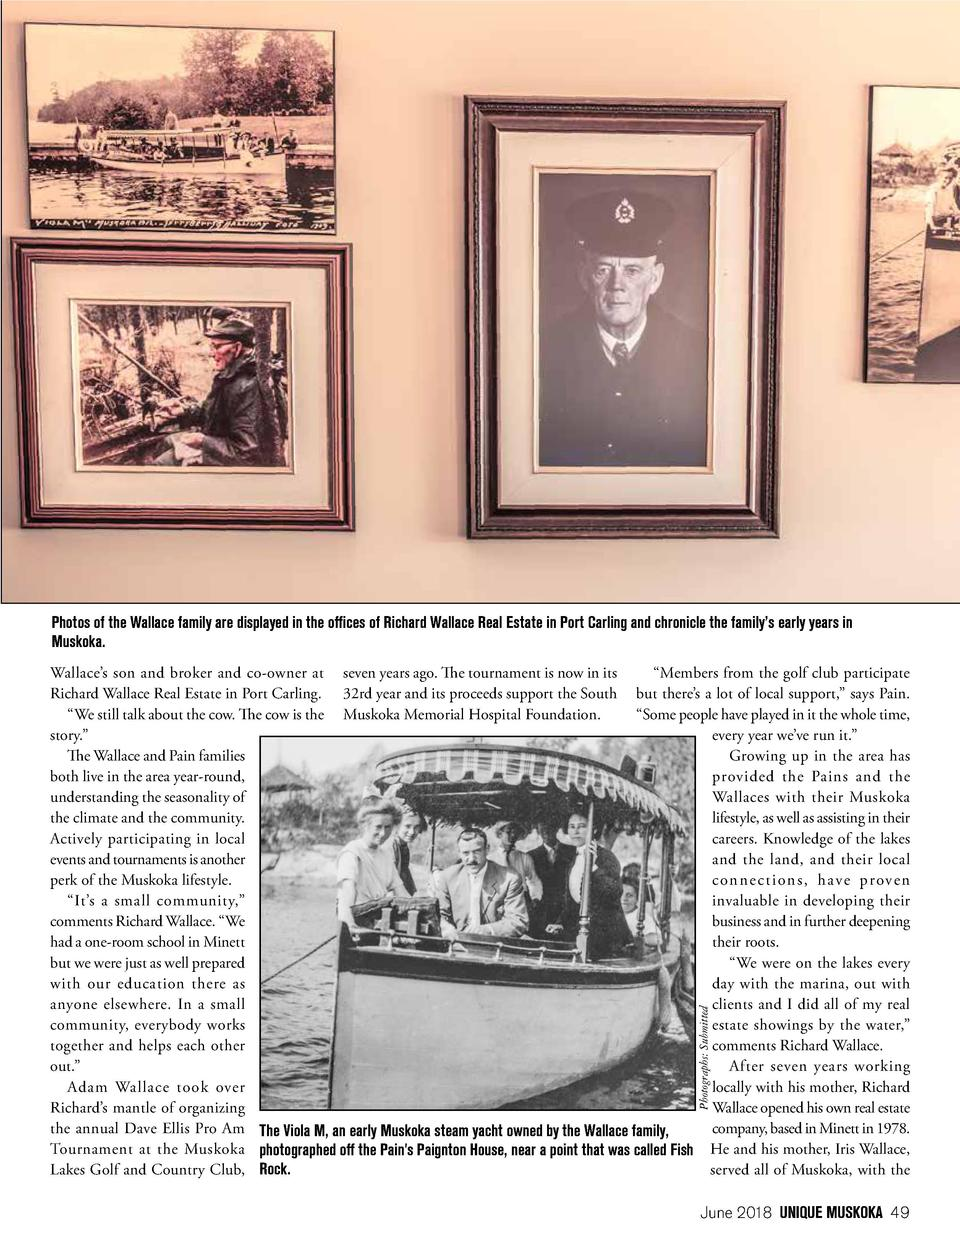 Photos of the Wallace family are displayed in the offices of Richard Wallace Real Estate in Port Carling and chronicle the...